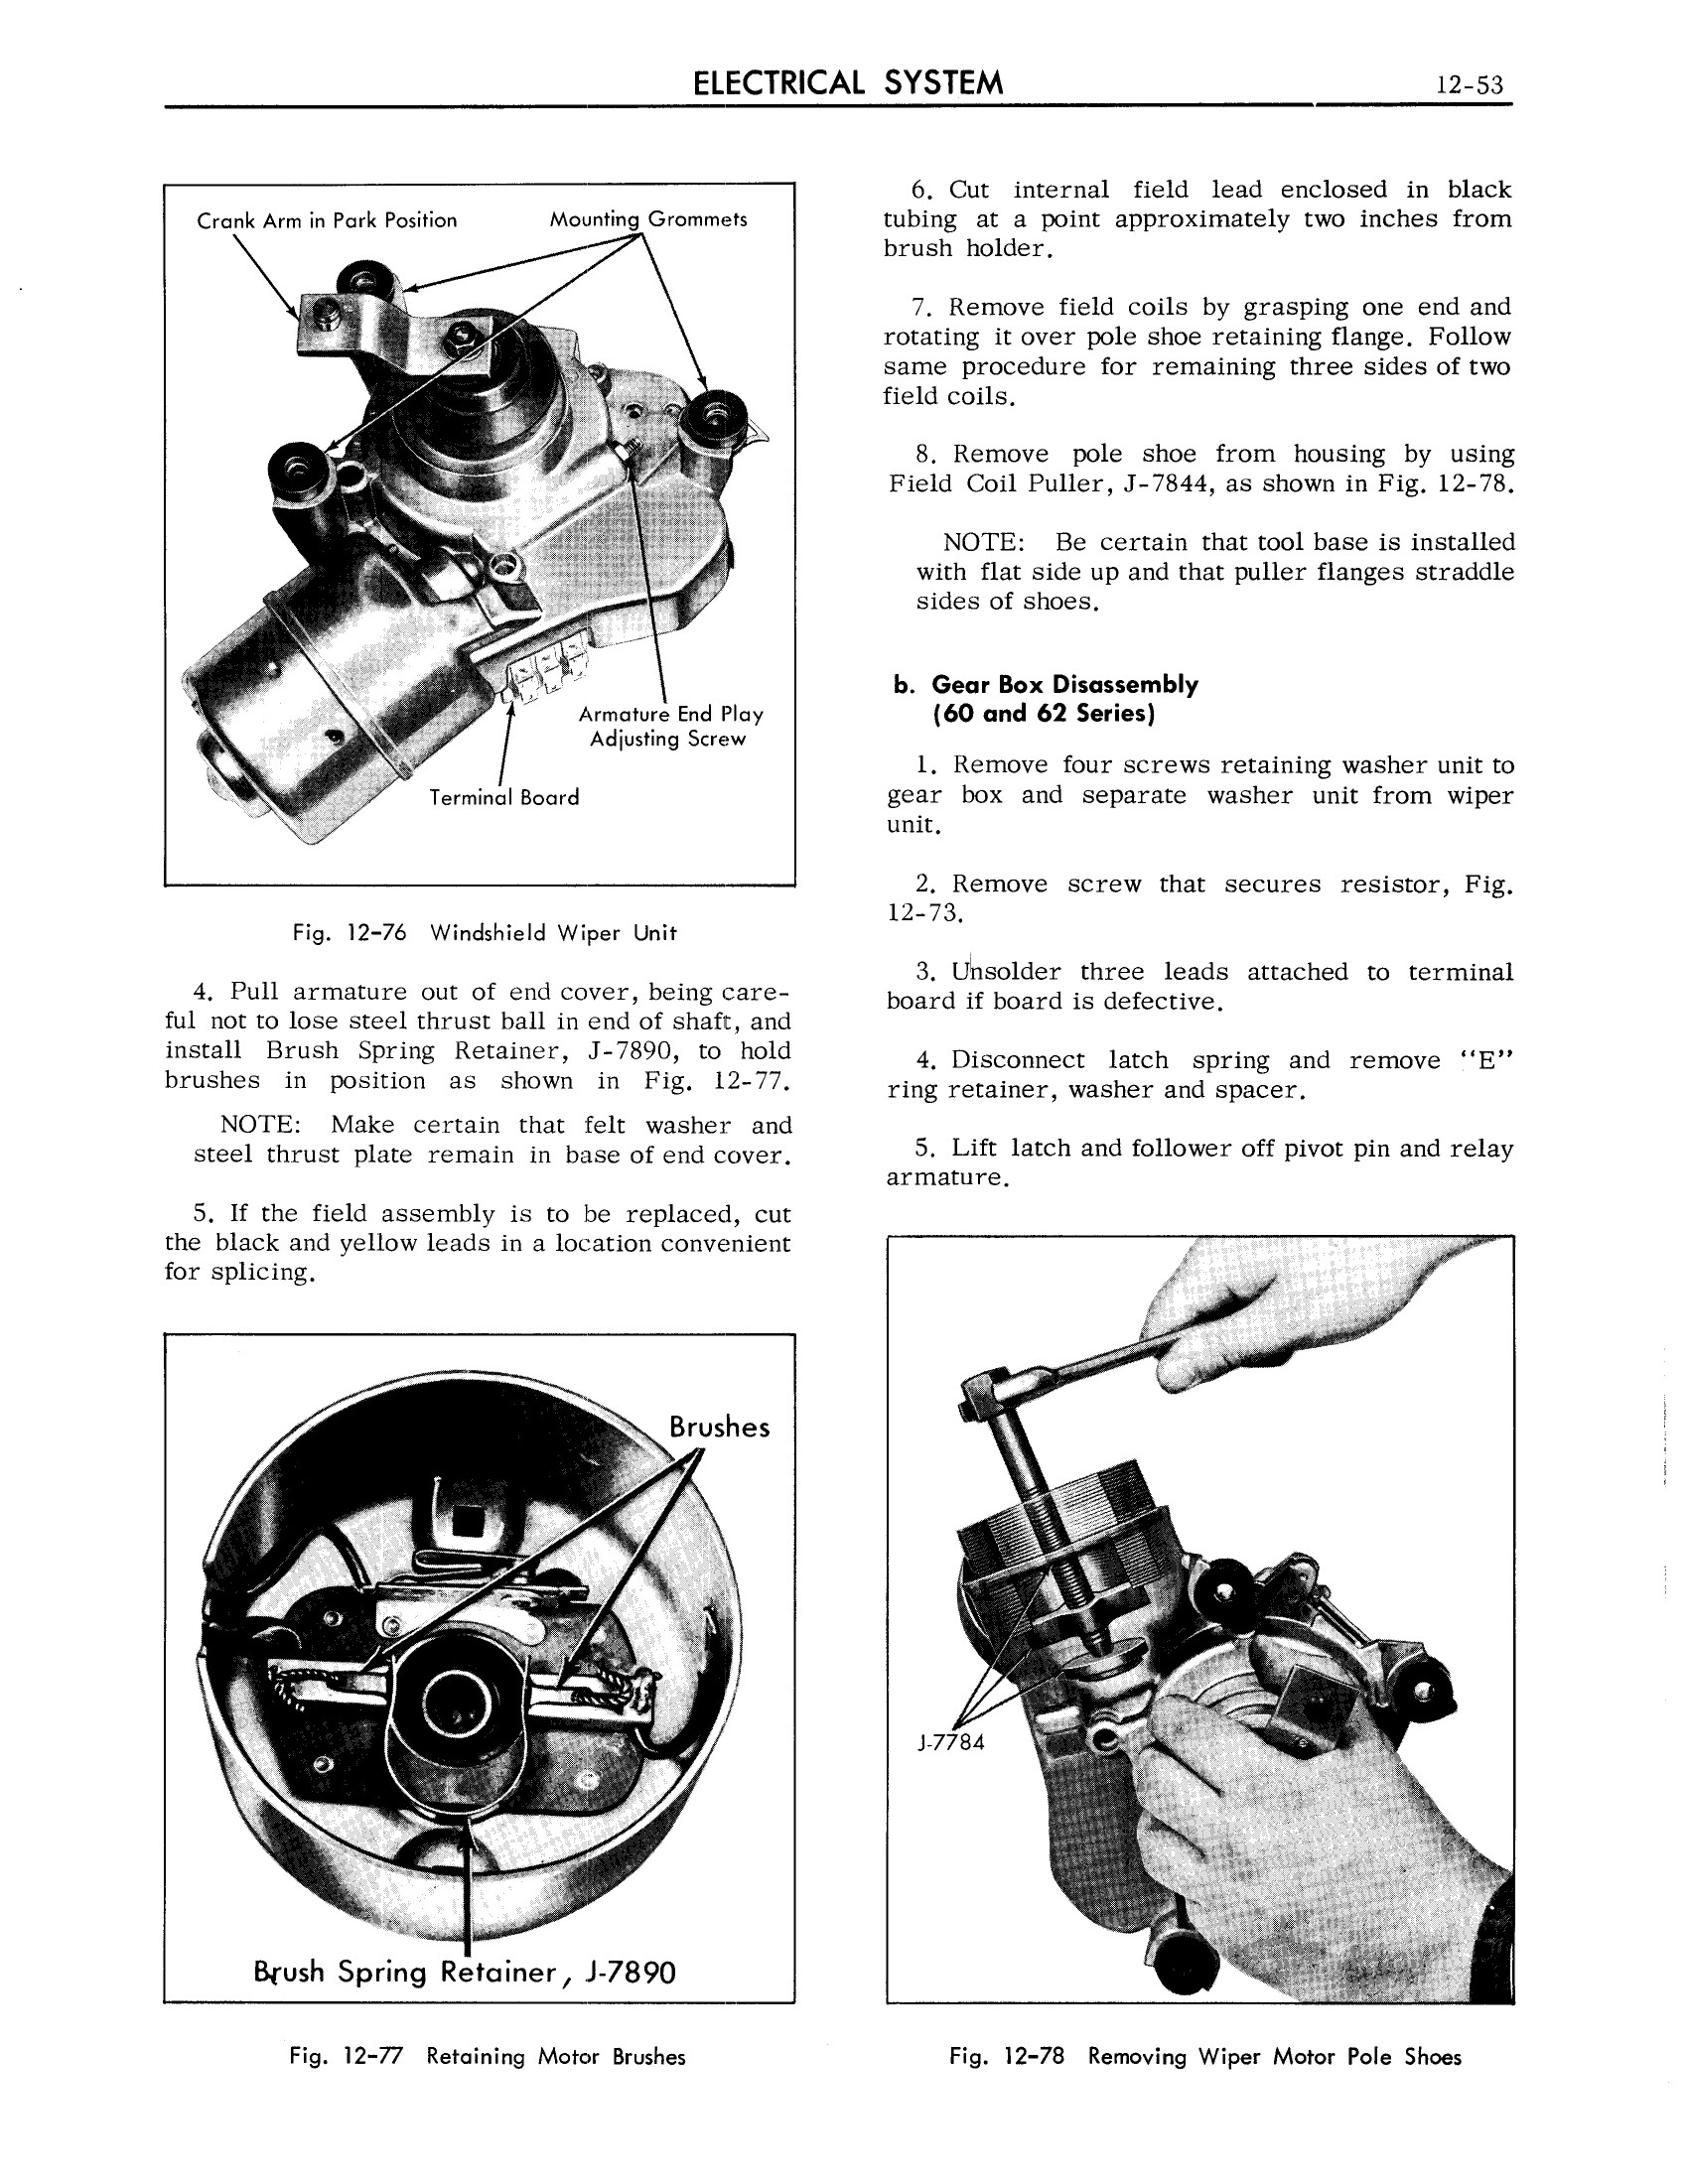 1963 Cadillac Shop Manual- Electrical System Page 53 of 100